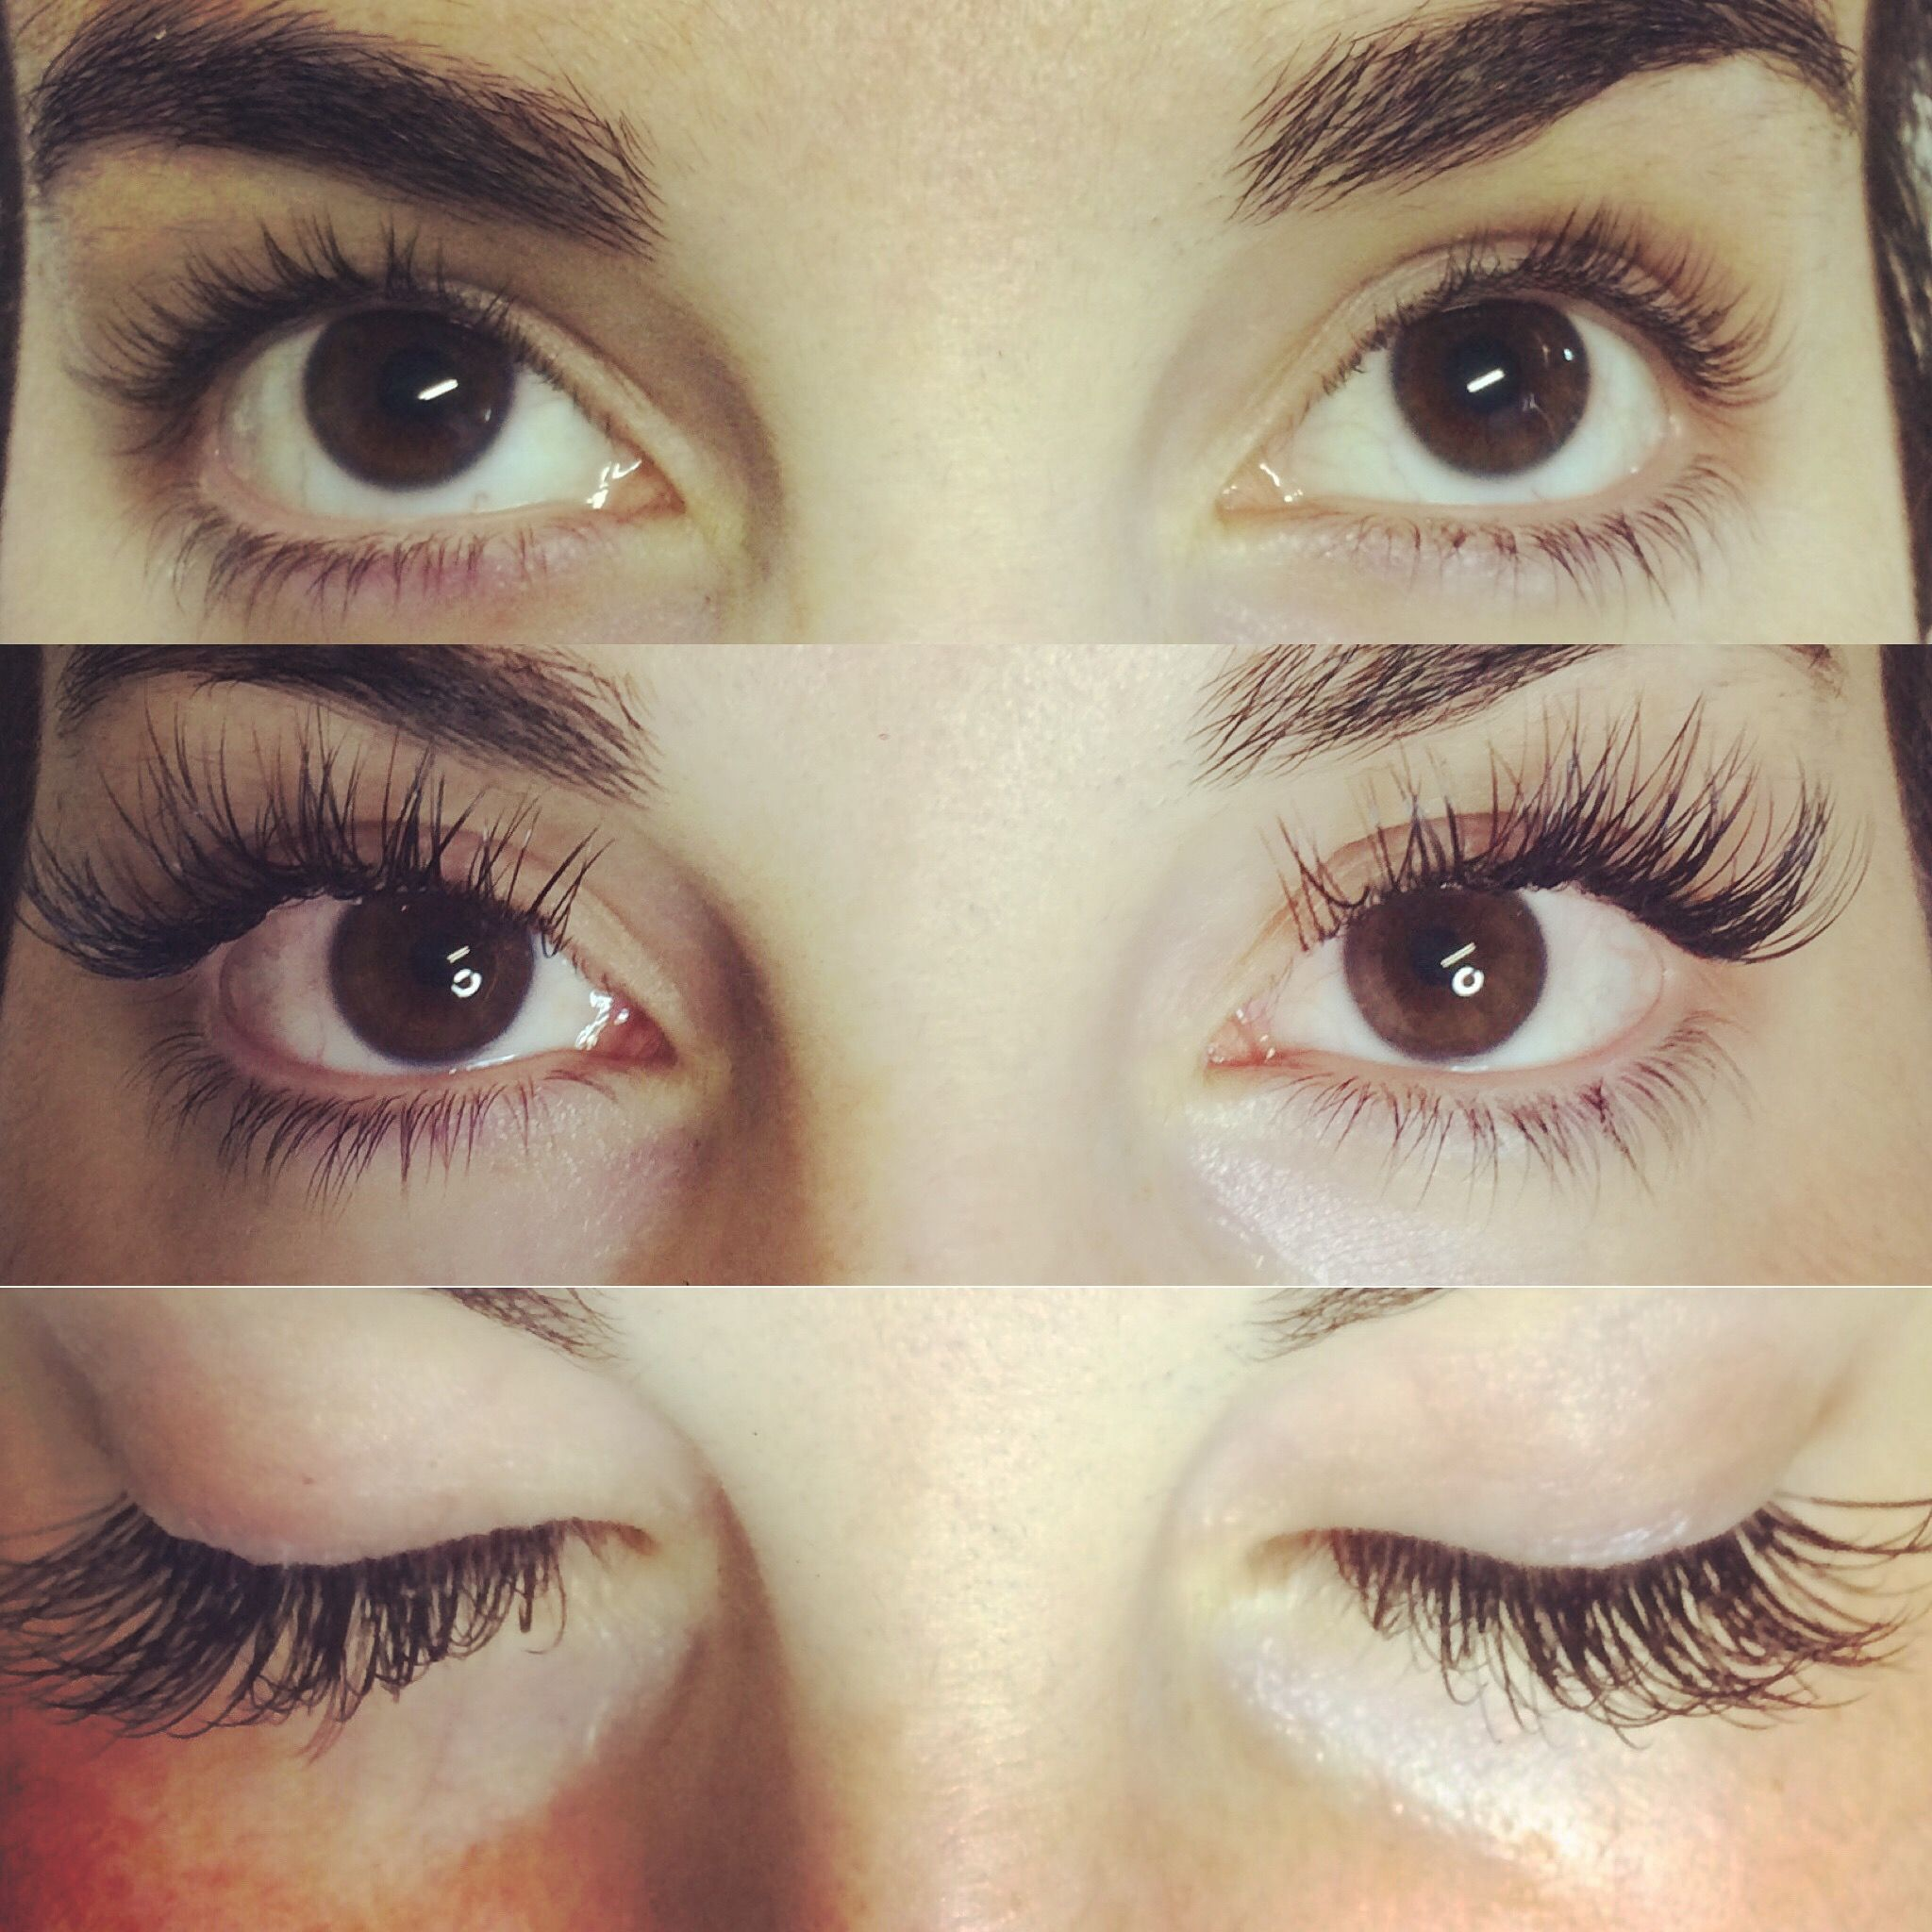 cb0cb94c011 Before and after Bella Lash eyelash Extensions by Margarita Style ...